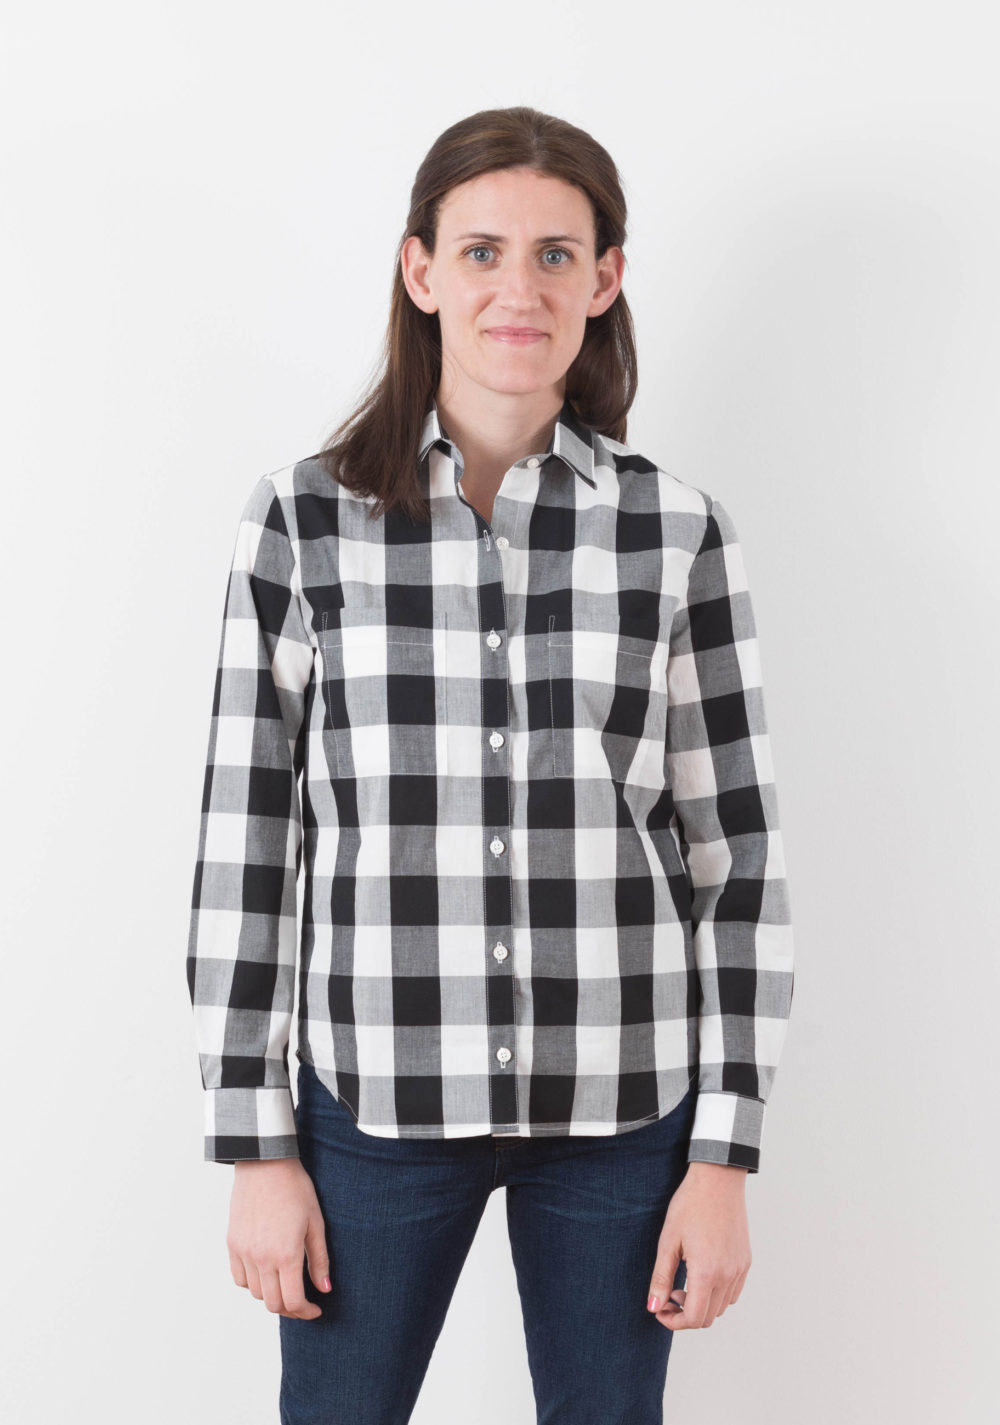 Archer Button Up Shirt Pattern By Grainline Studio